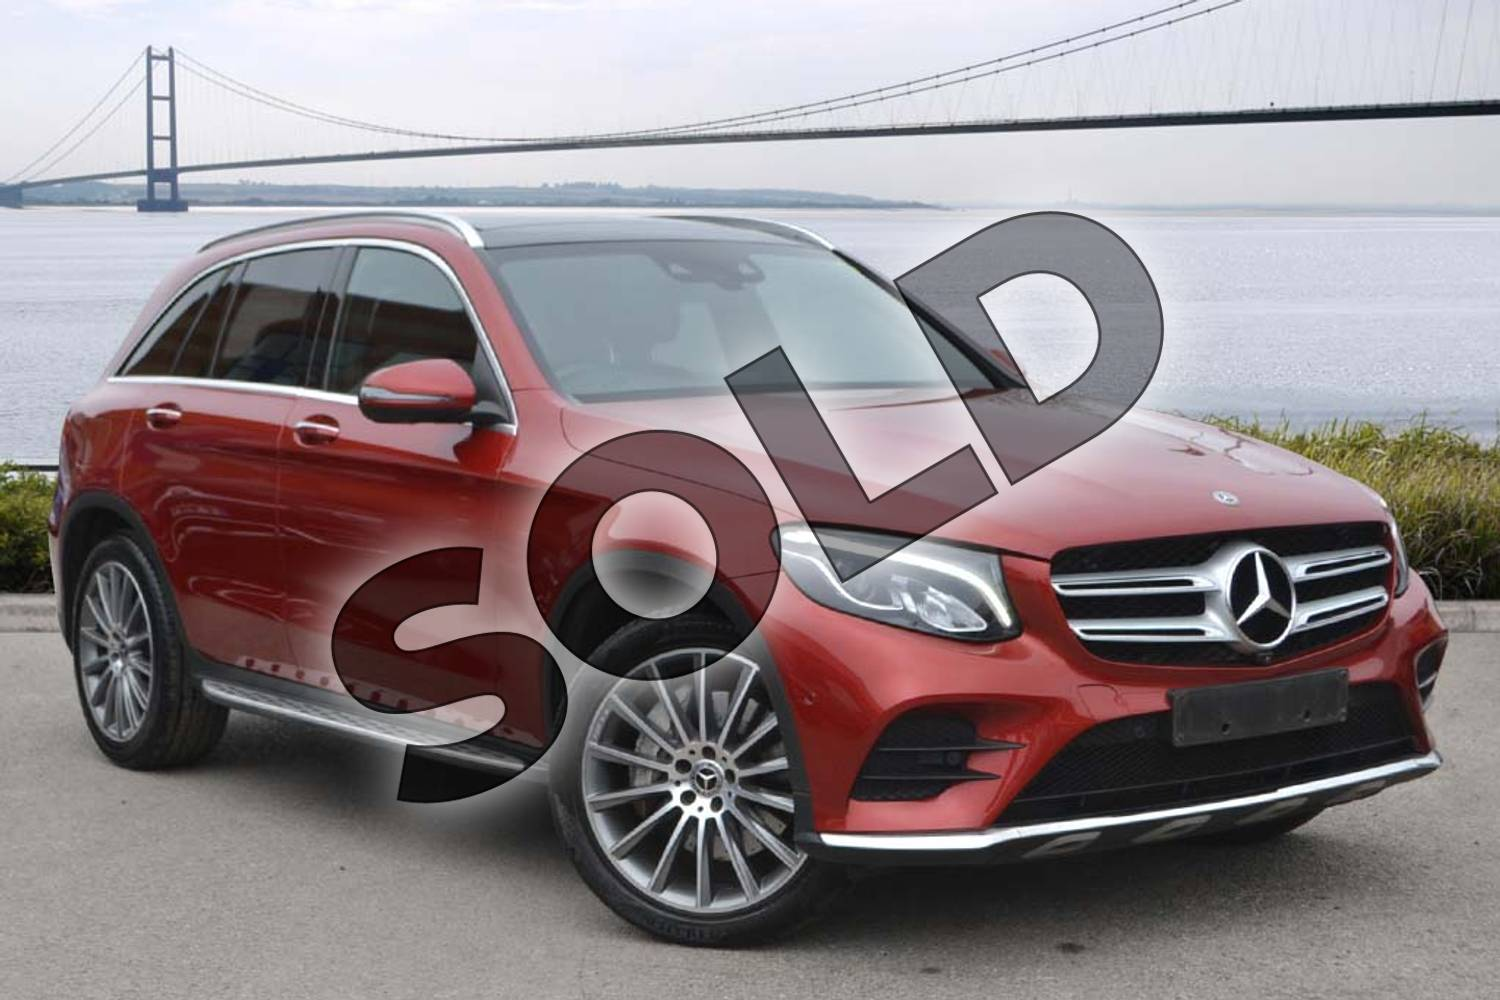 2017 Mercedes-Benz GLC Diesel Estate GLC 250d 4Matic AMG Line Premium 5dr 9G-Tronic in designo hyacinth red metallic at Mercedes-Benz of Hull